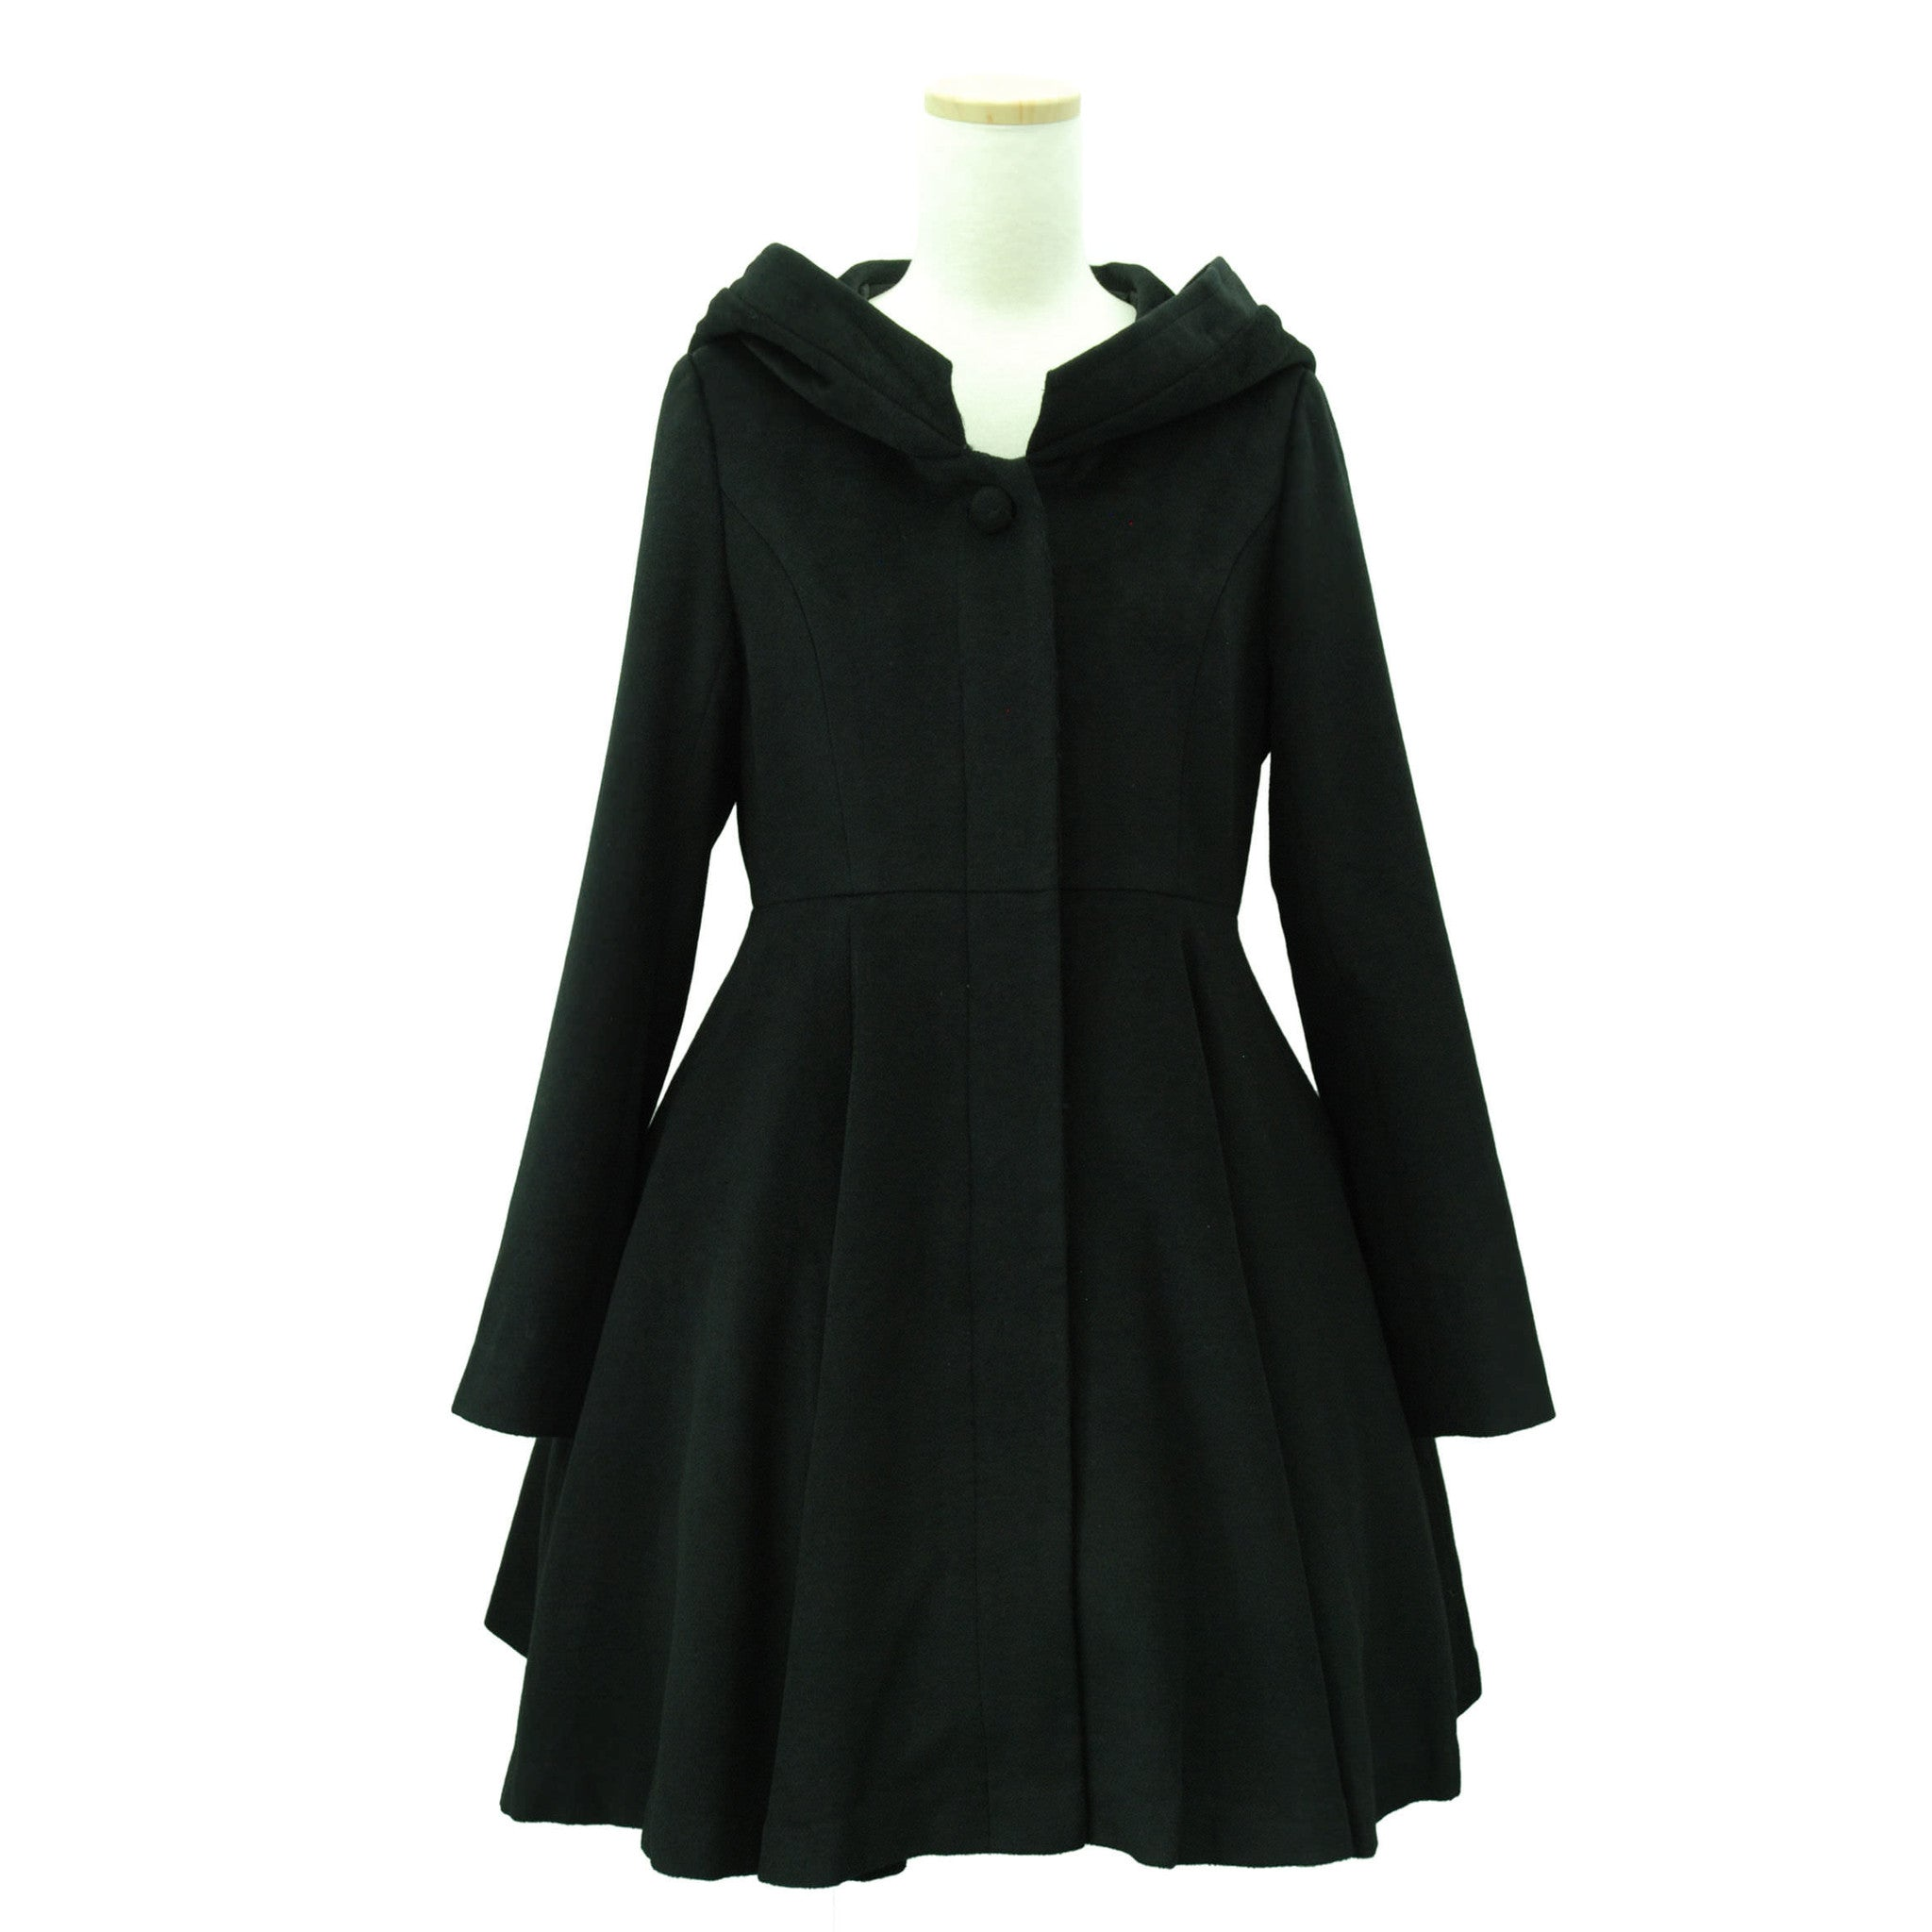 "Sheglit ""Eleanor"" Food Coat / 1 item left"